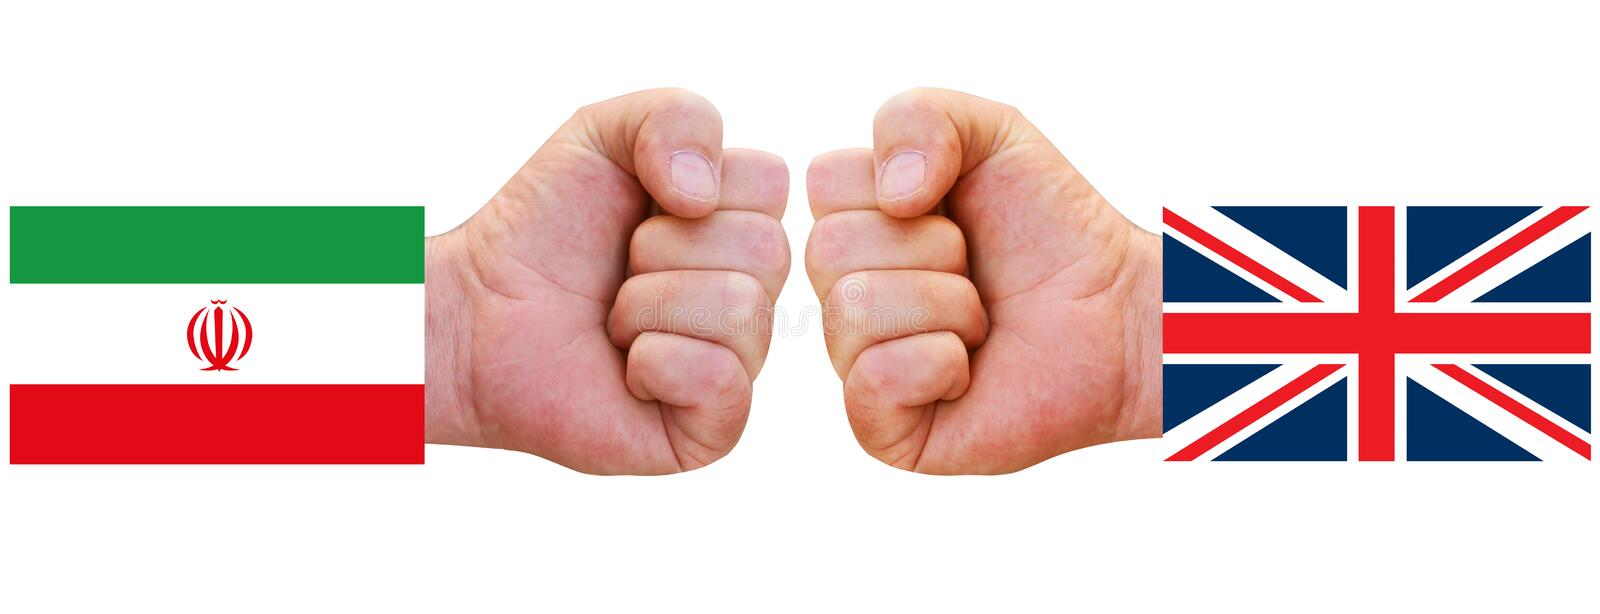 Flags of UK and Iran with clenched fists punching out against each other. Symbolizing conflict between Iran and United Kingdom - E. Ngland. Isolated on white stock photos